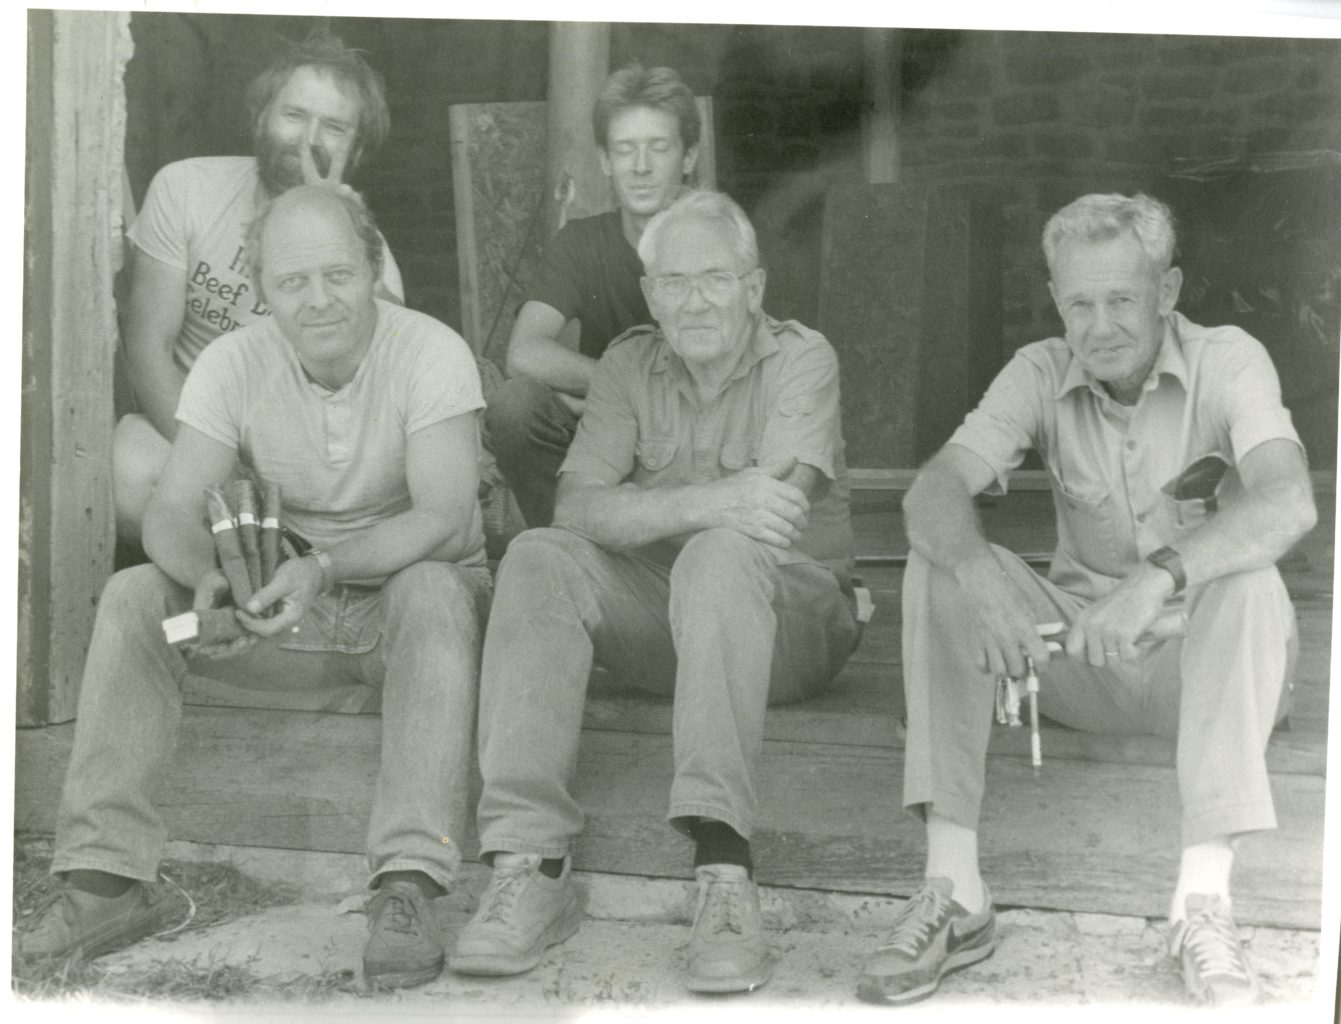 Five men pose for photo at knife making class at Vesterheim. Havard Bergland, Rob Spear, Fred Cogelow